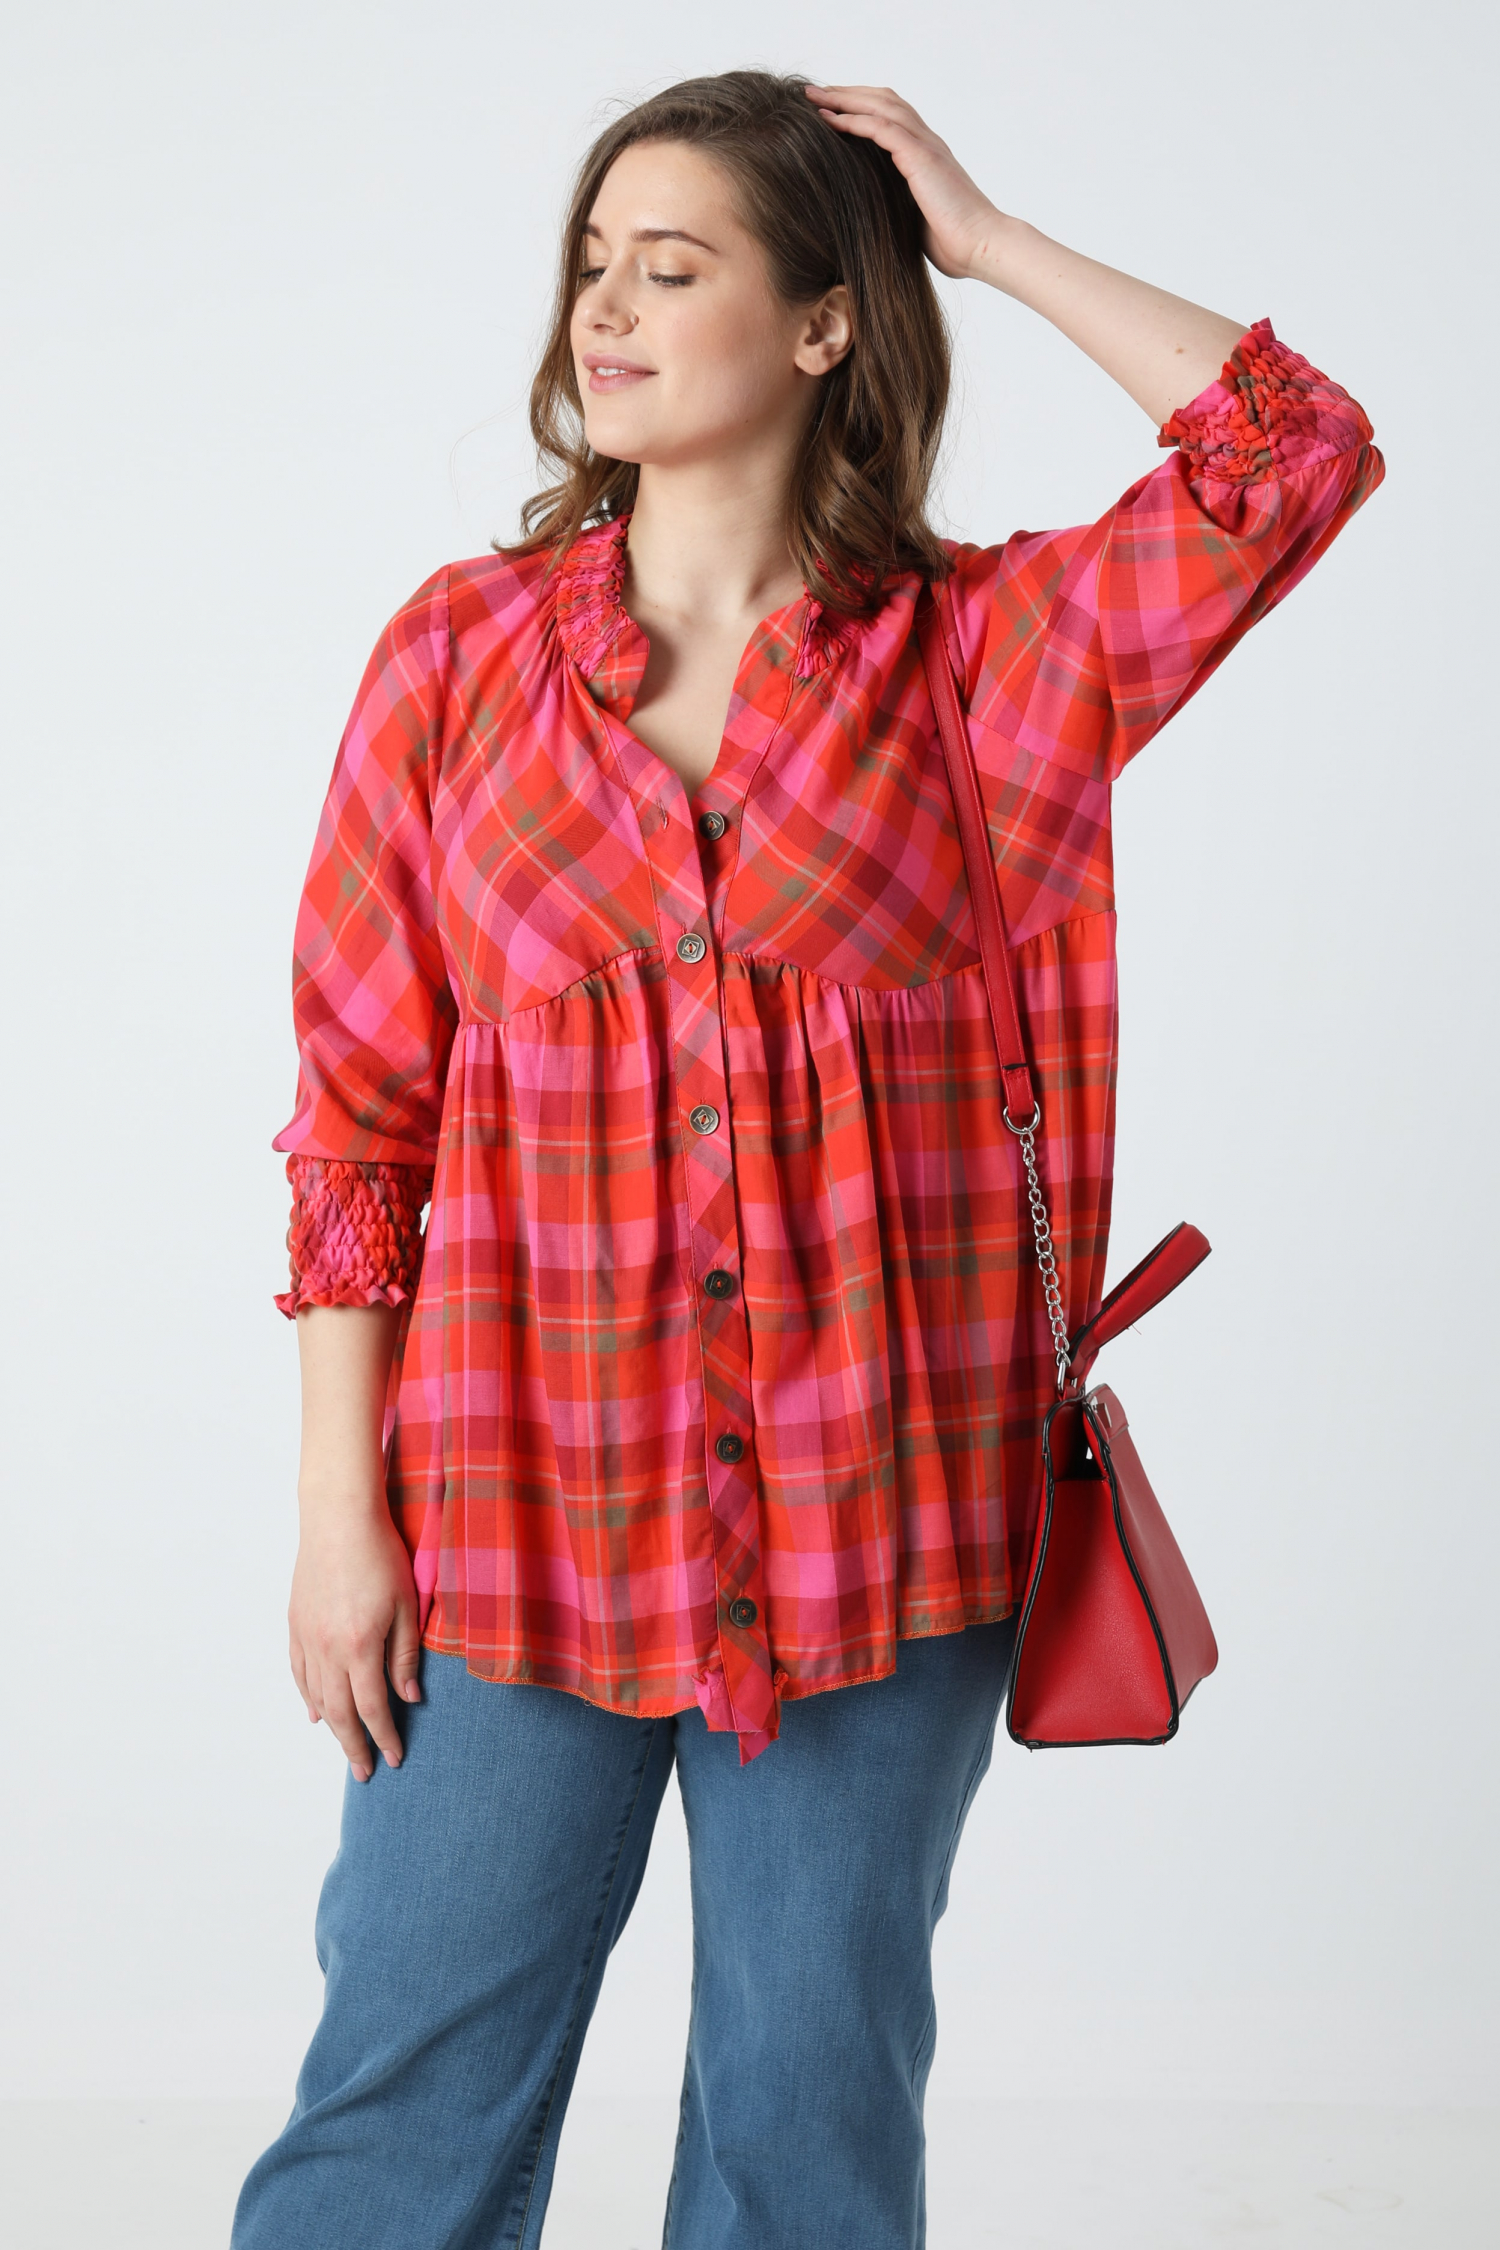 3/4 sleeve plaid shirt (shipping April 5/10)